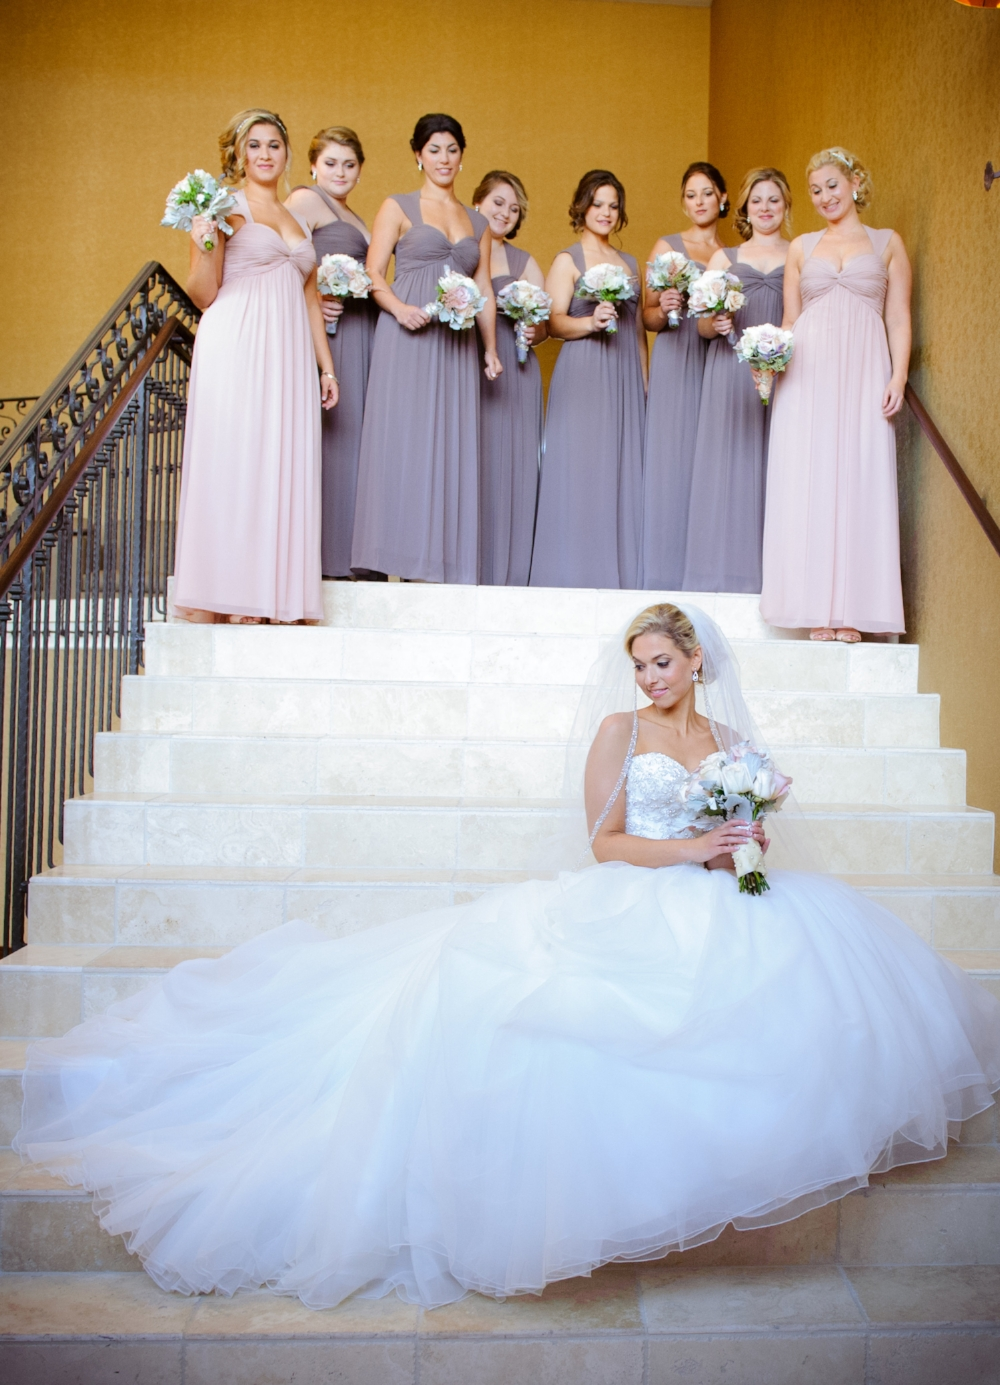 bride-sitting-at-end-of-staircase-bridesmaids-in-background